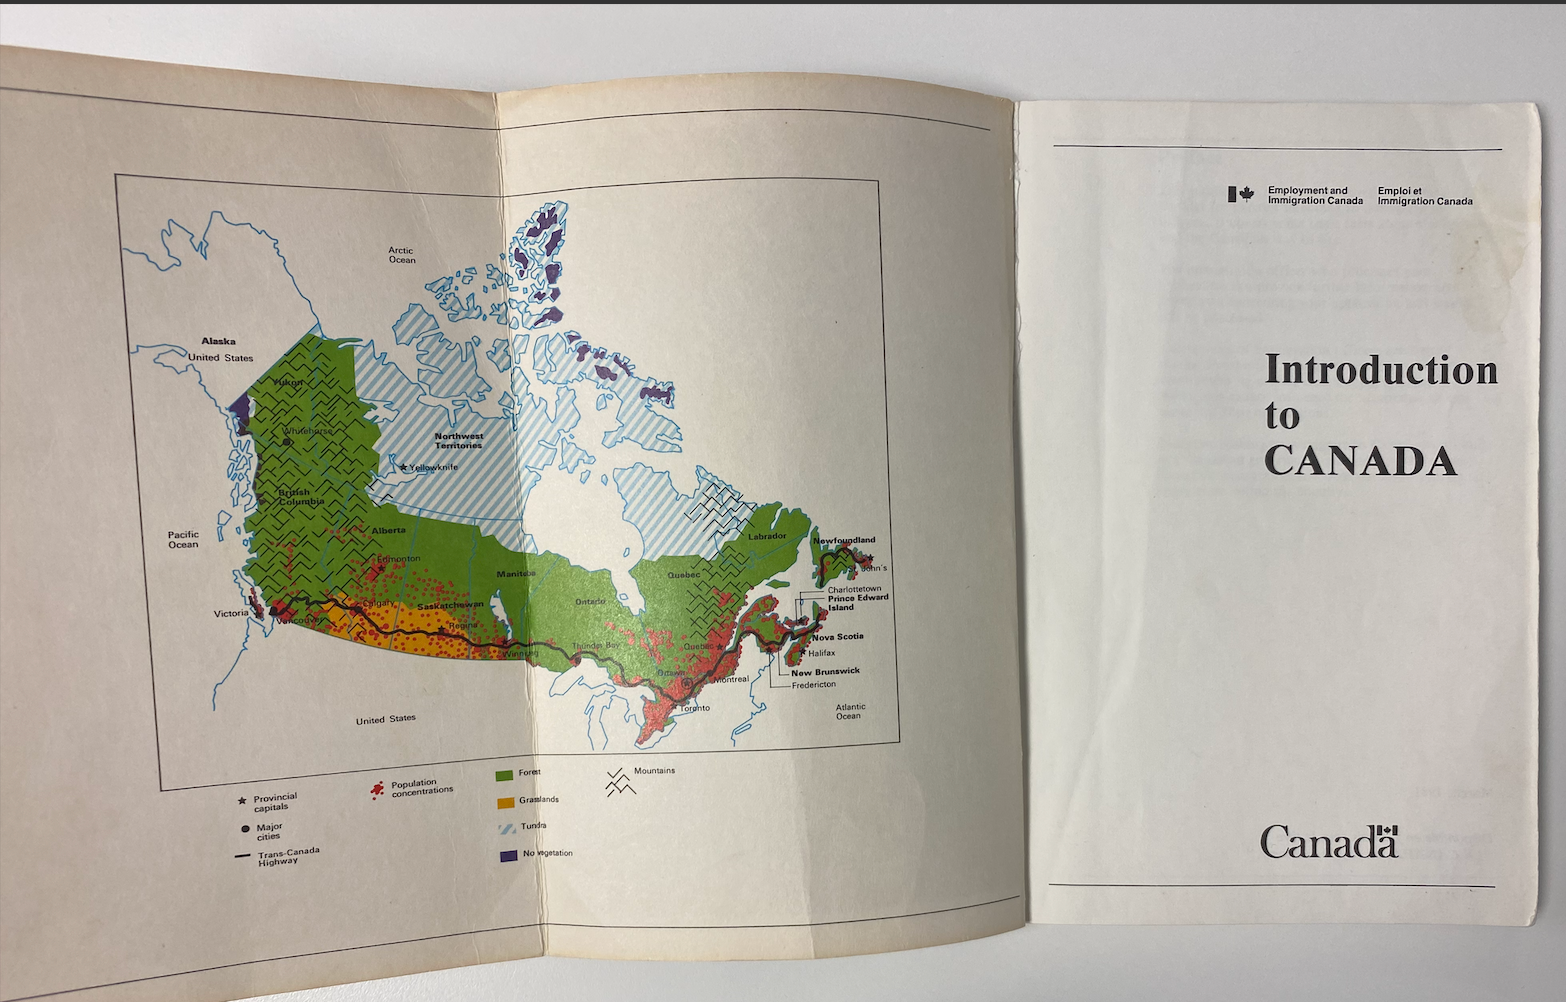 Introduction to Canada Booklet given to Andrzej once he was permitted to come to Canada